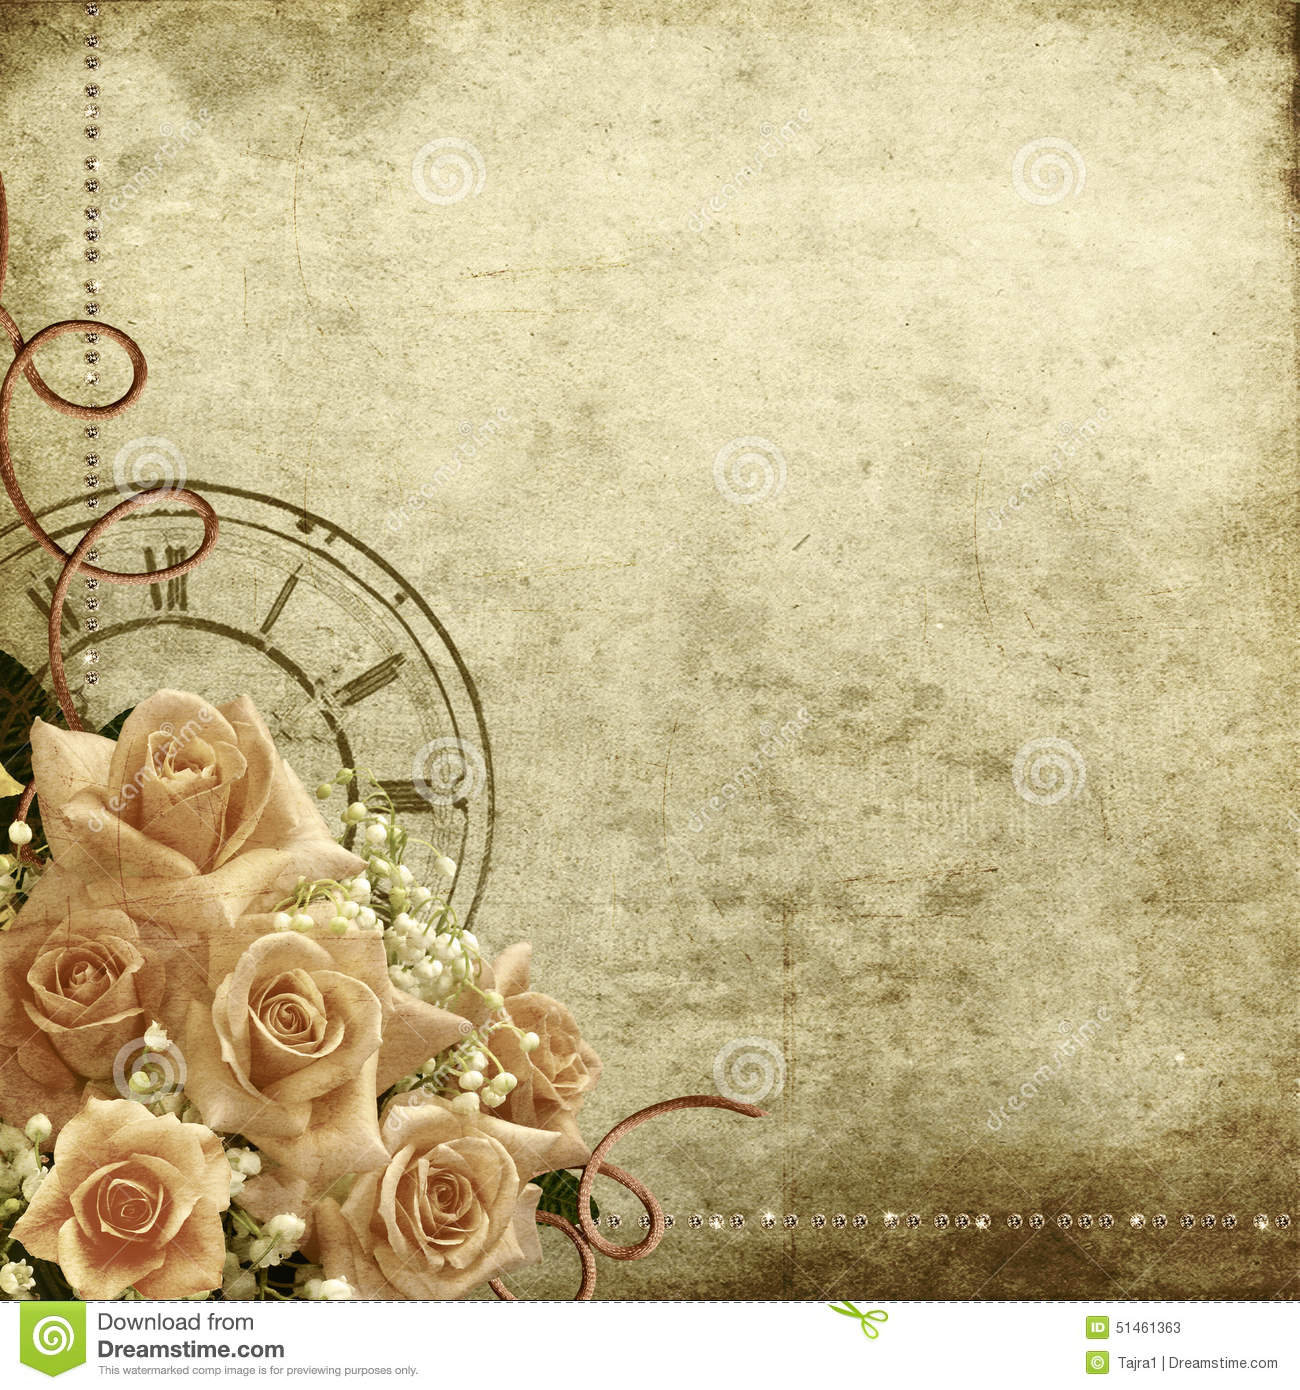 vintage texture background stock image image of invitation 51461363 dreamstime com